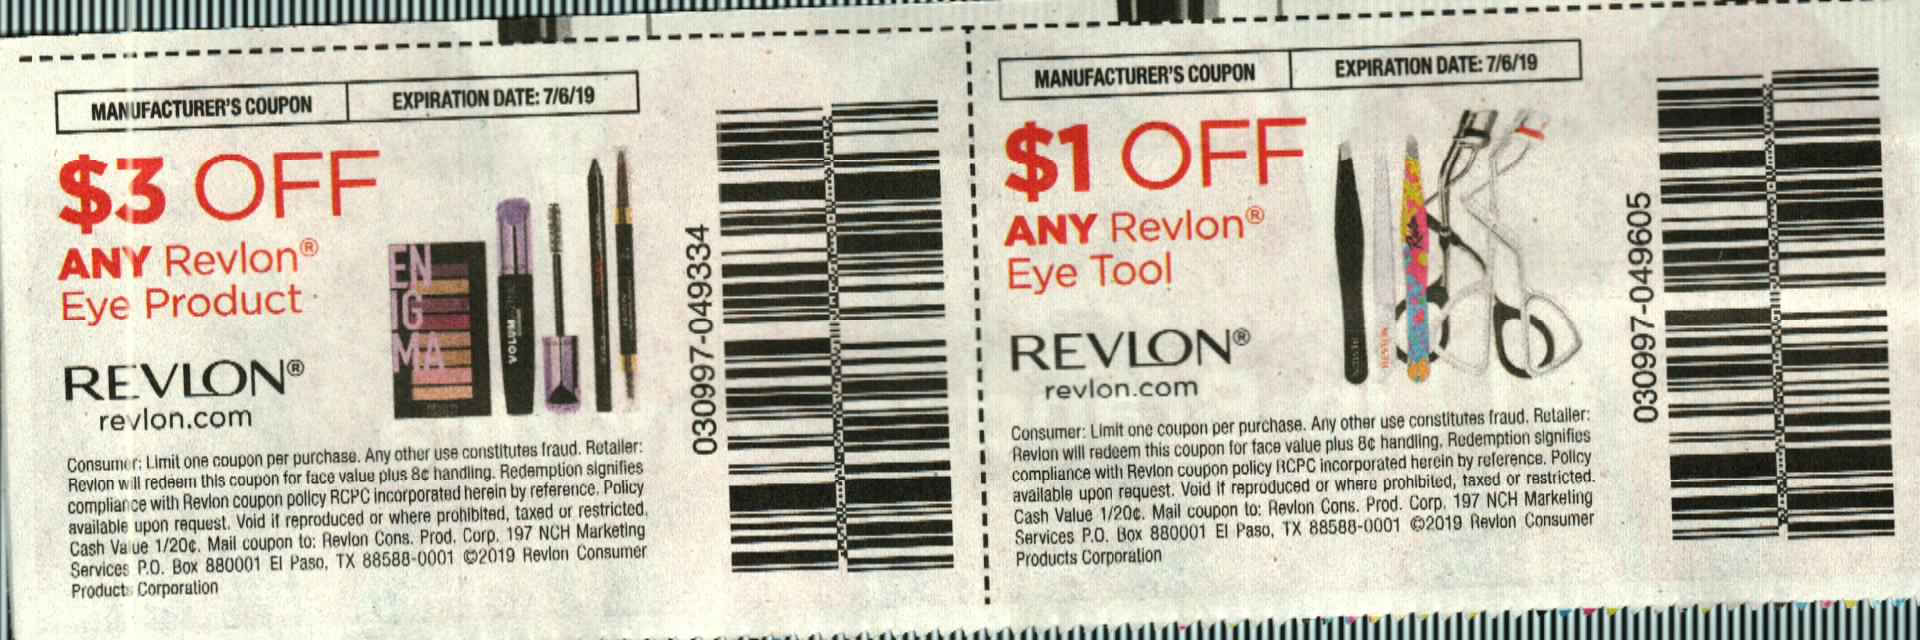 15 Coupons $3/1 Revlon Eye Product  + $1/1 Revlon Eye Tool 7/6/2019